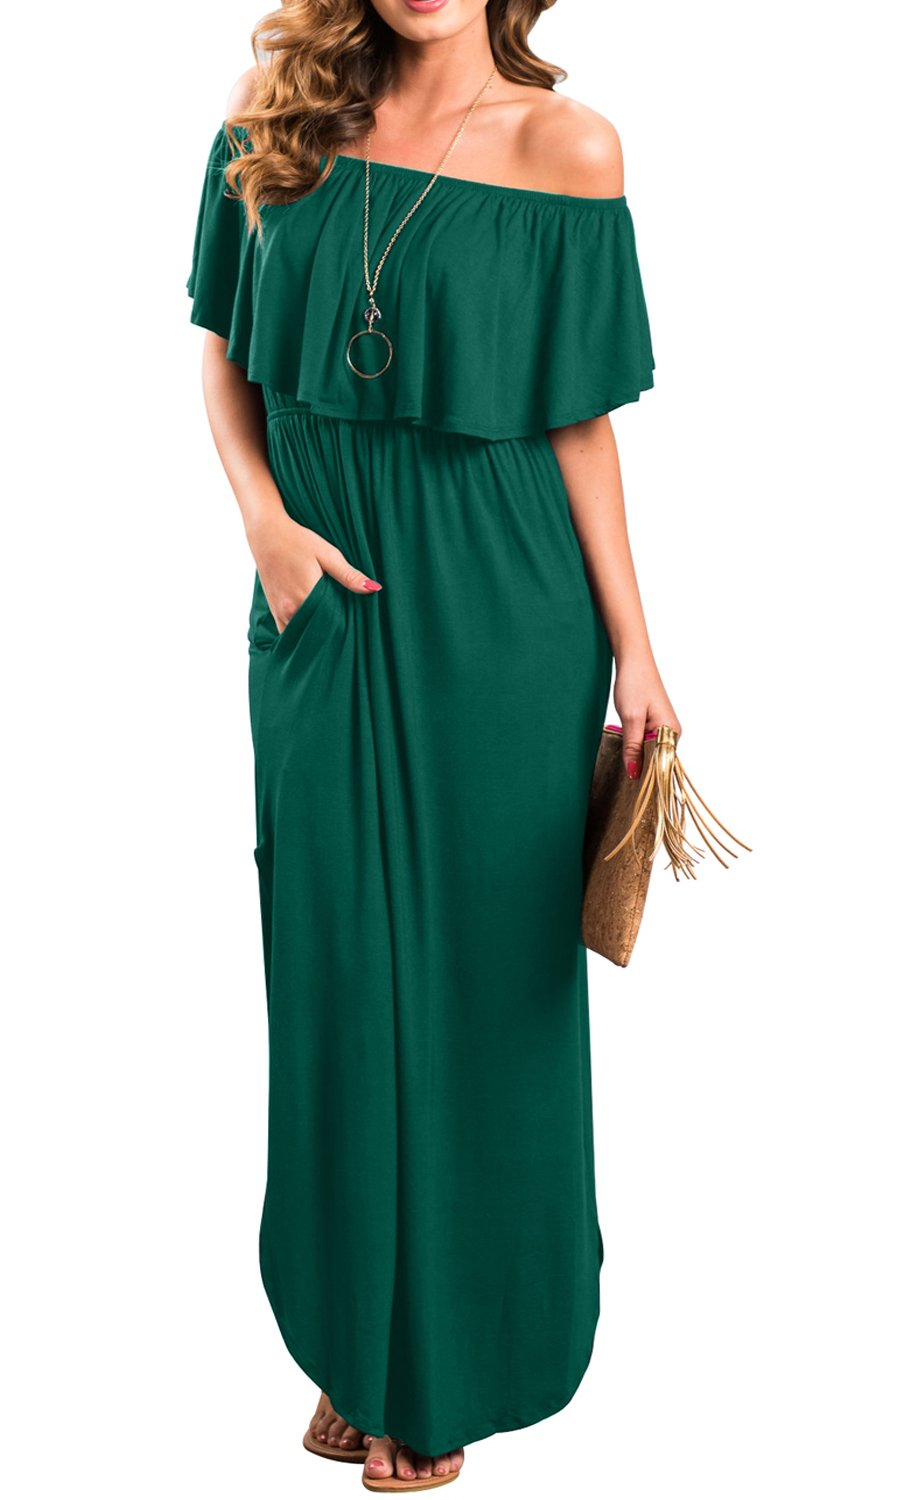 I2CRAZY Women's Casual Swing Flowy Plain Simple Cotton T-Shirt Loose Dress(Size-S,DarkGreen)